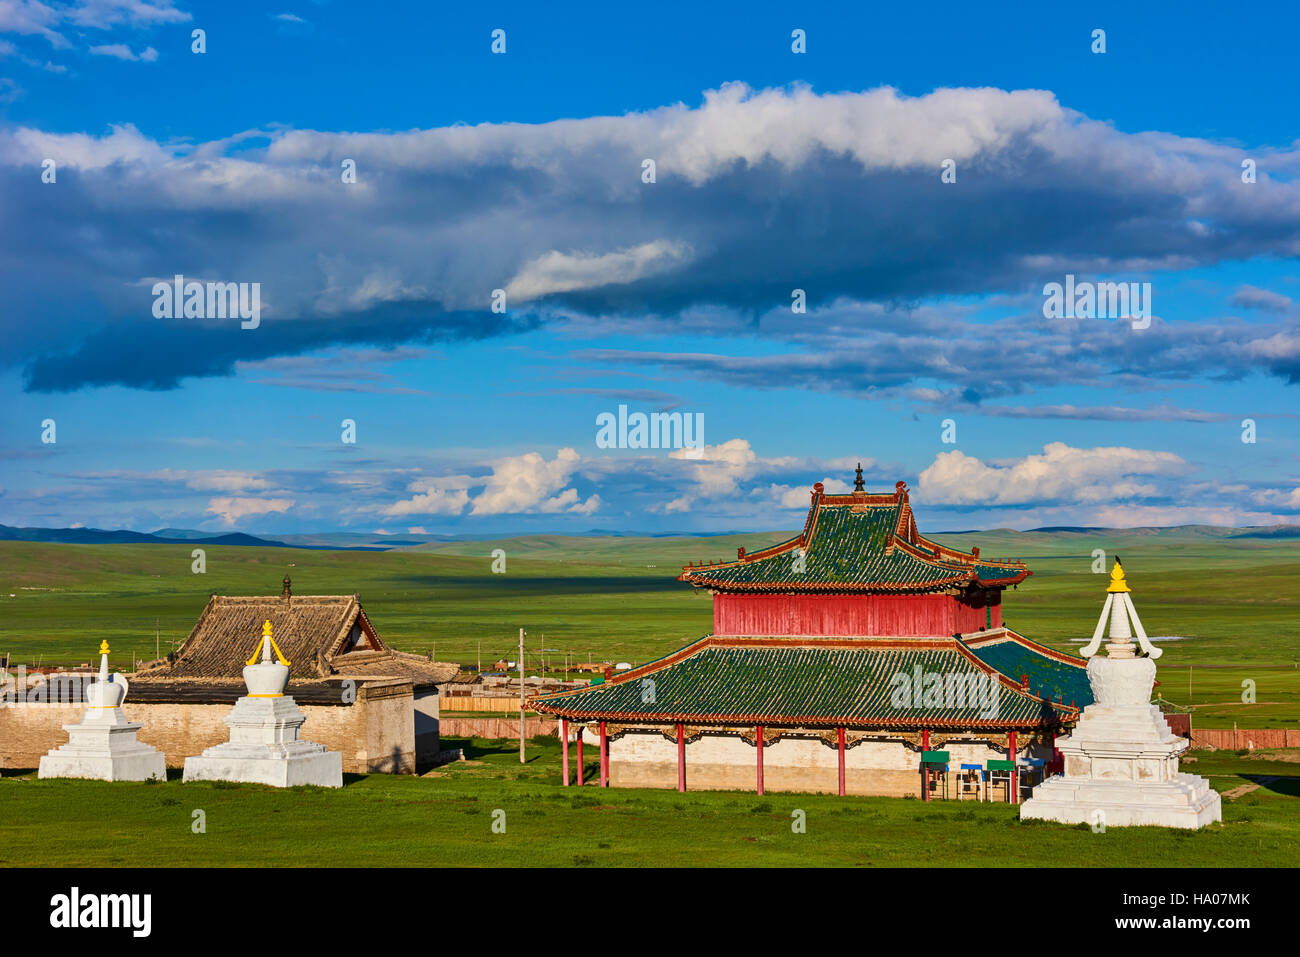 Mongolia, Ovorkhangai, Shankh Monastery, founded in 1647 by Zanabazar - Stock Image